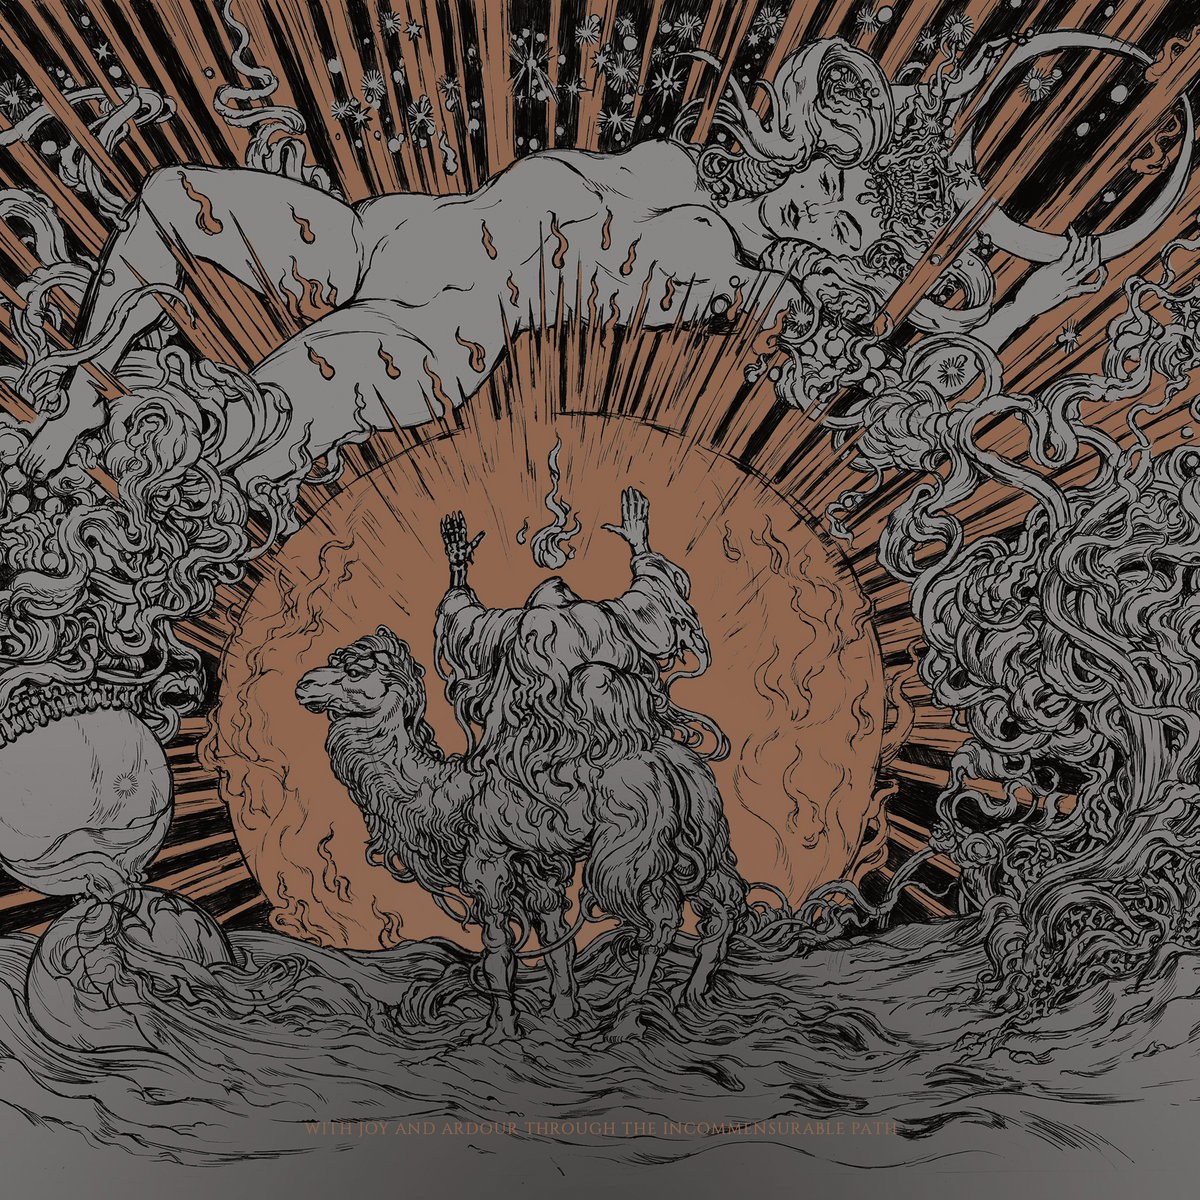 Reviews for Hadit - With Joy and Ardour Through the Incommensurable Path